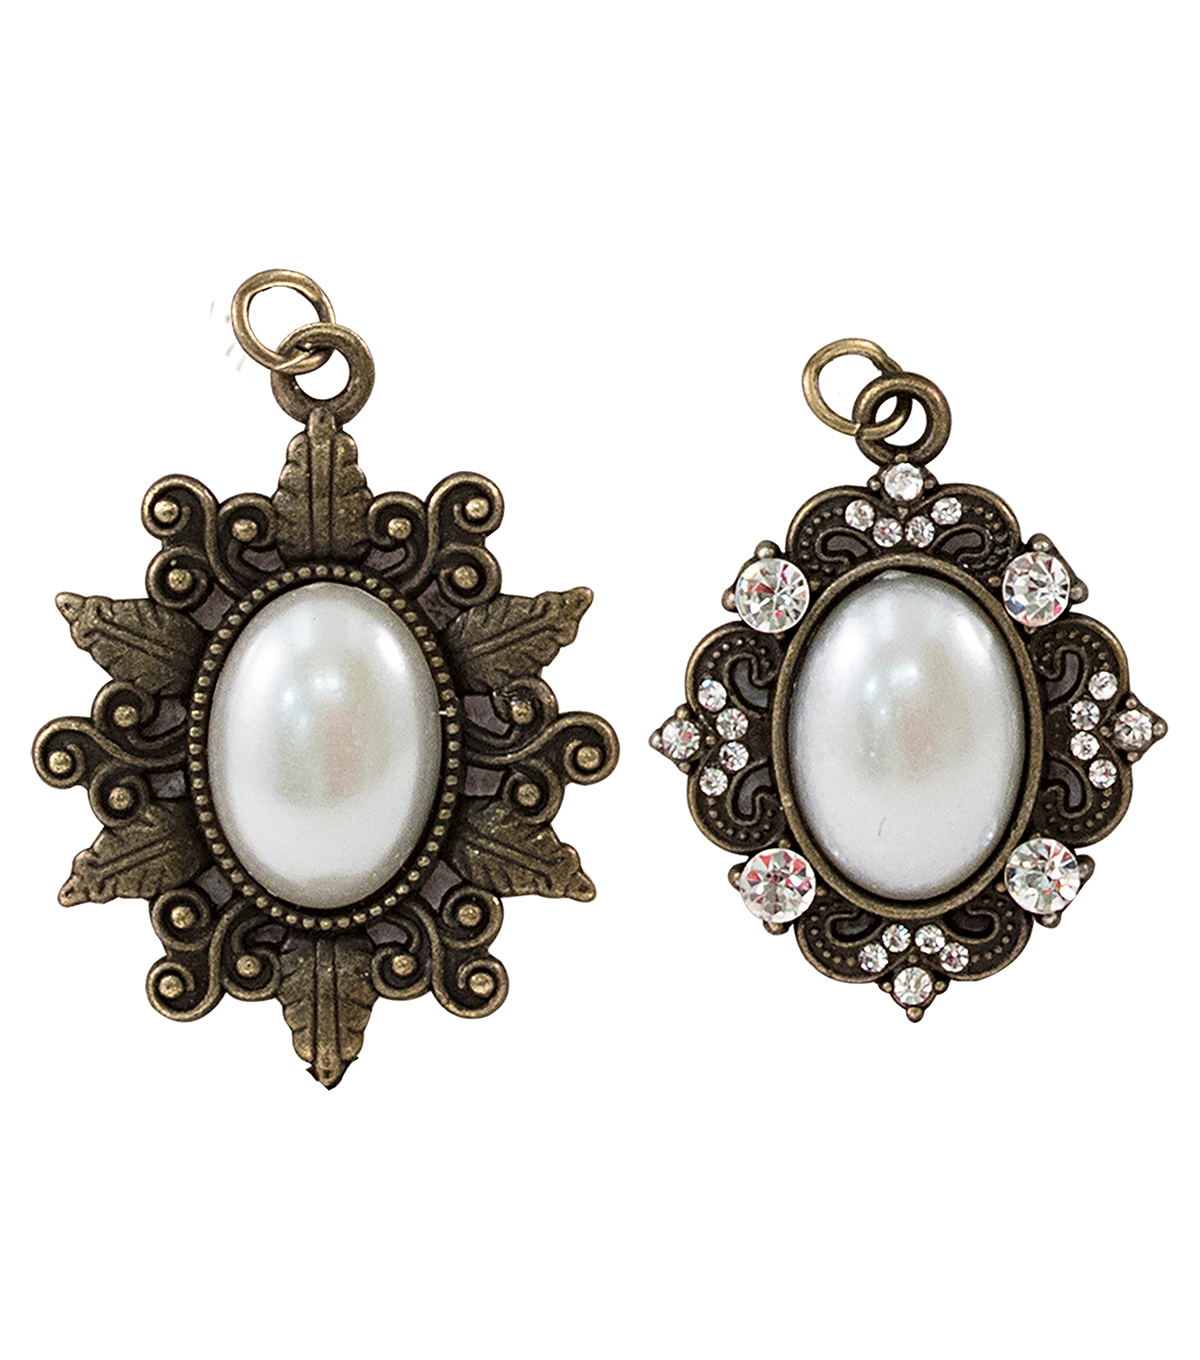 Tim Holtz Assemblage Pack of 2 Oval Pearl Frames Charms